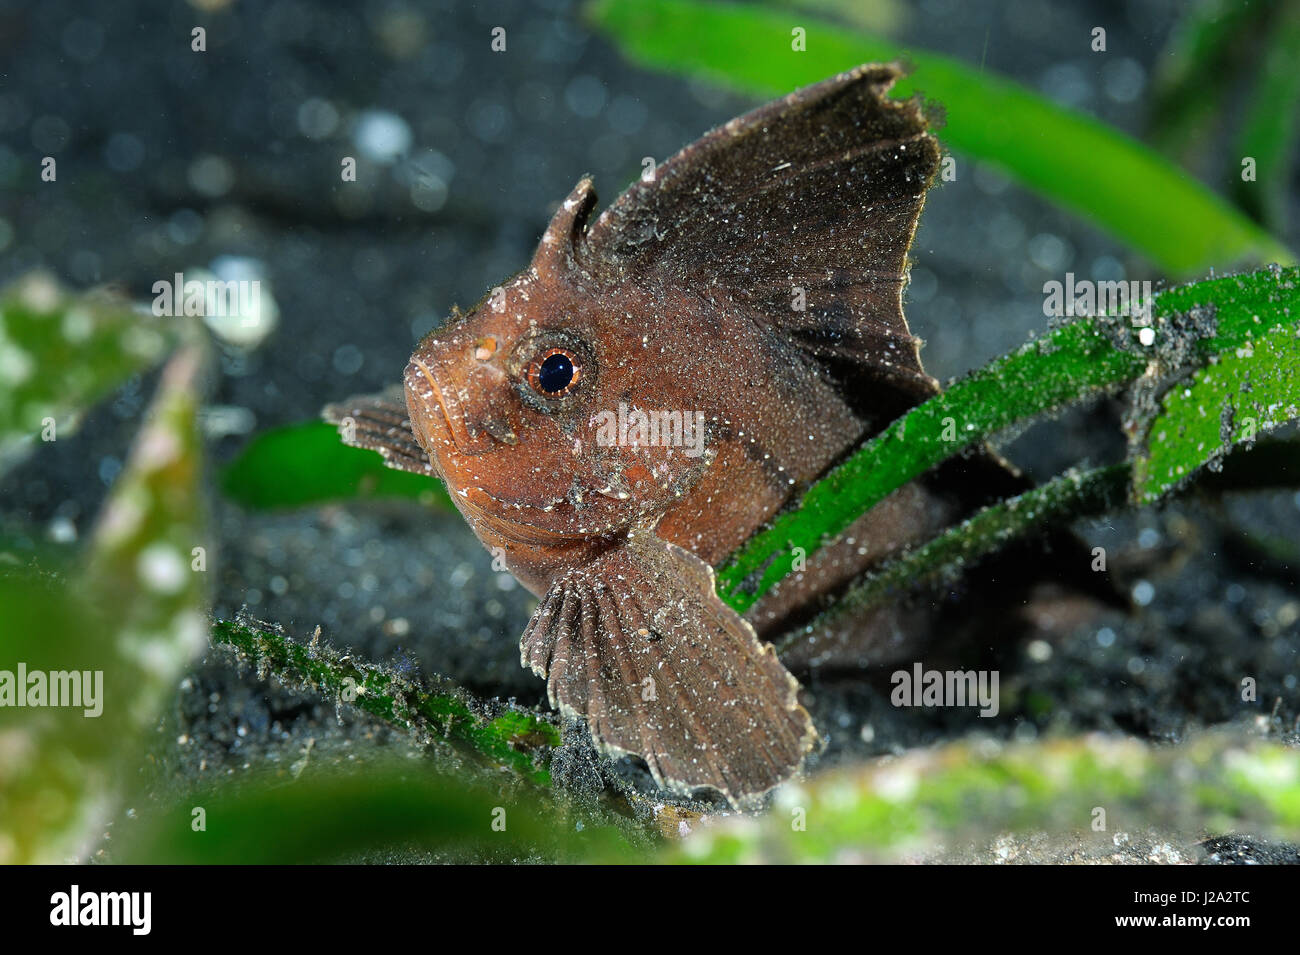 The spiny leaf fish resembles a fallen tree leaf that has sunk to the bottom - Stock Image